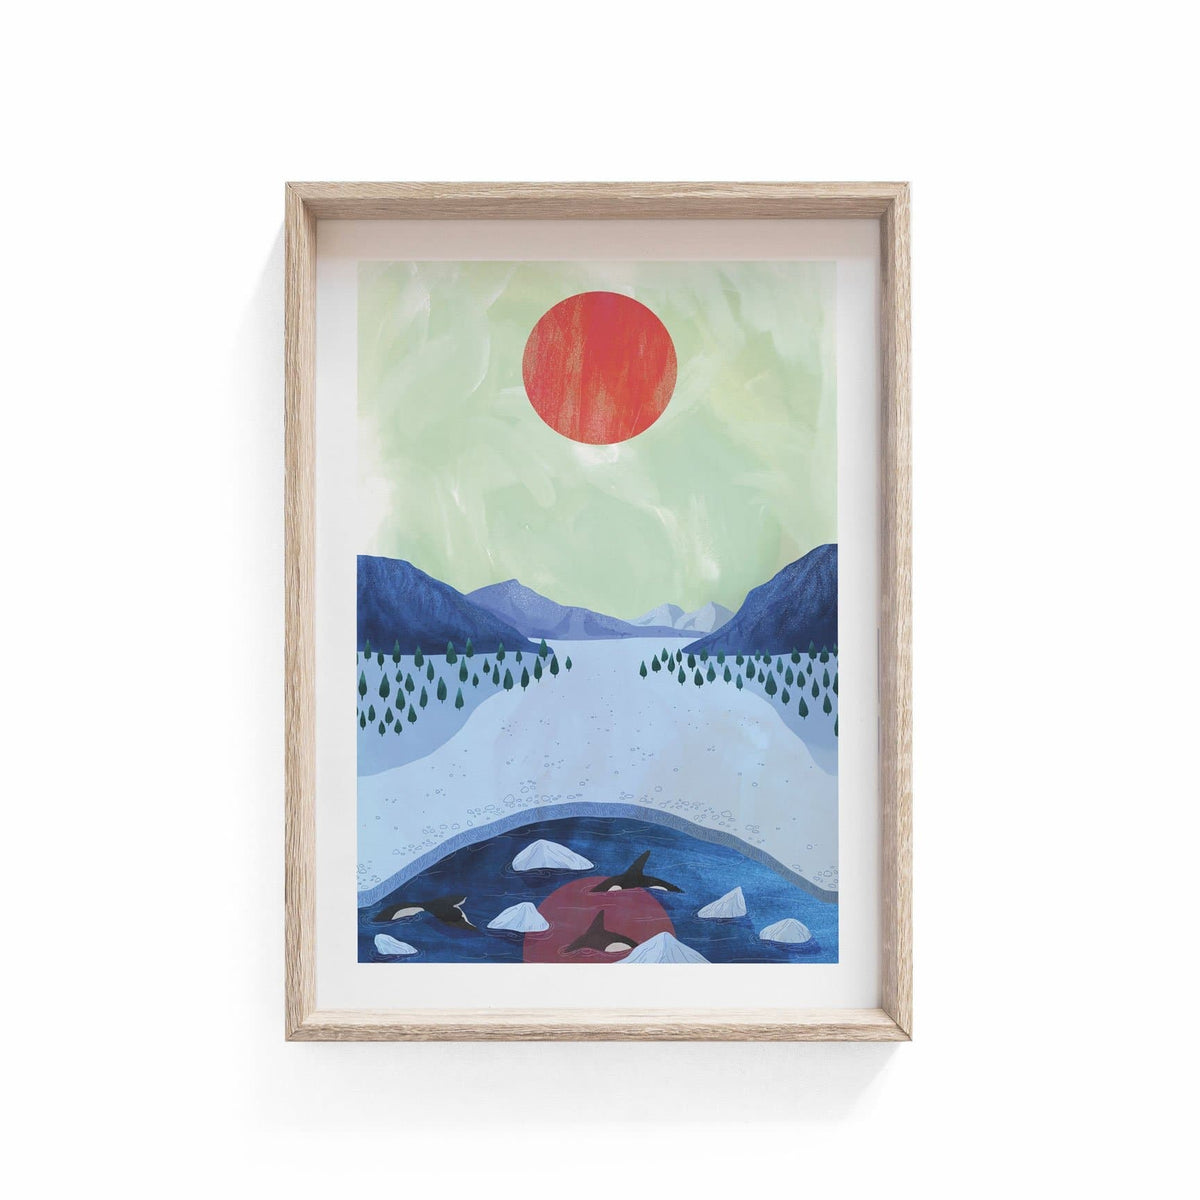 Orcas Illustration Print-Illustration-Hello Grimes-A3-Totem Store